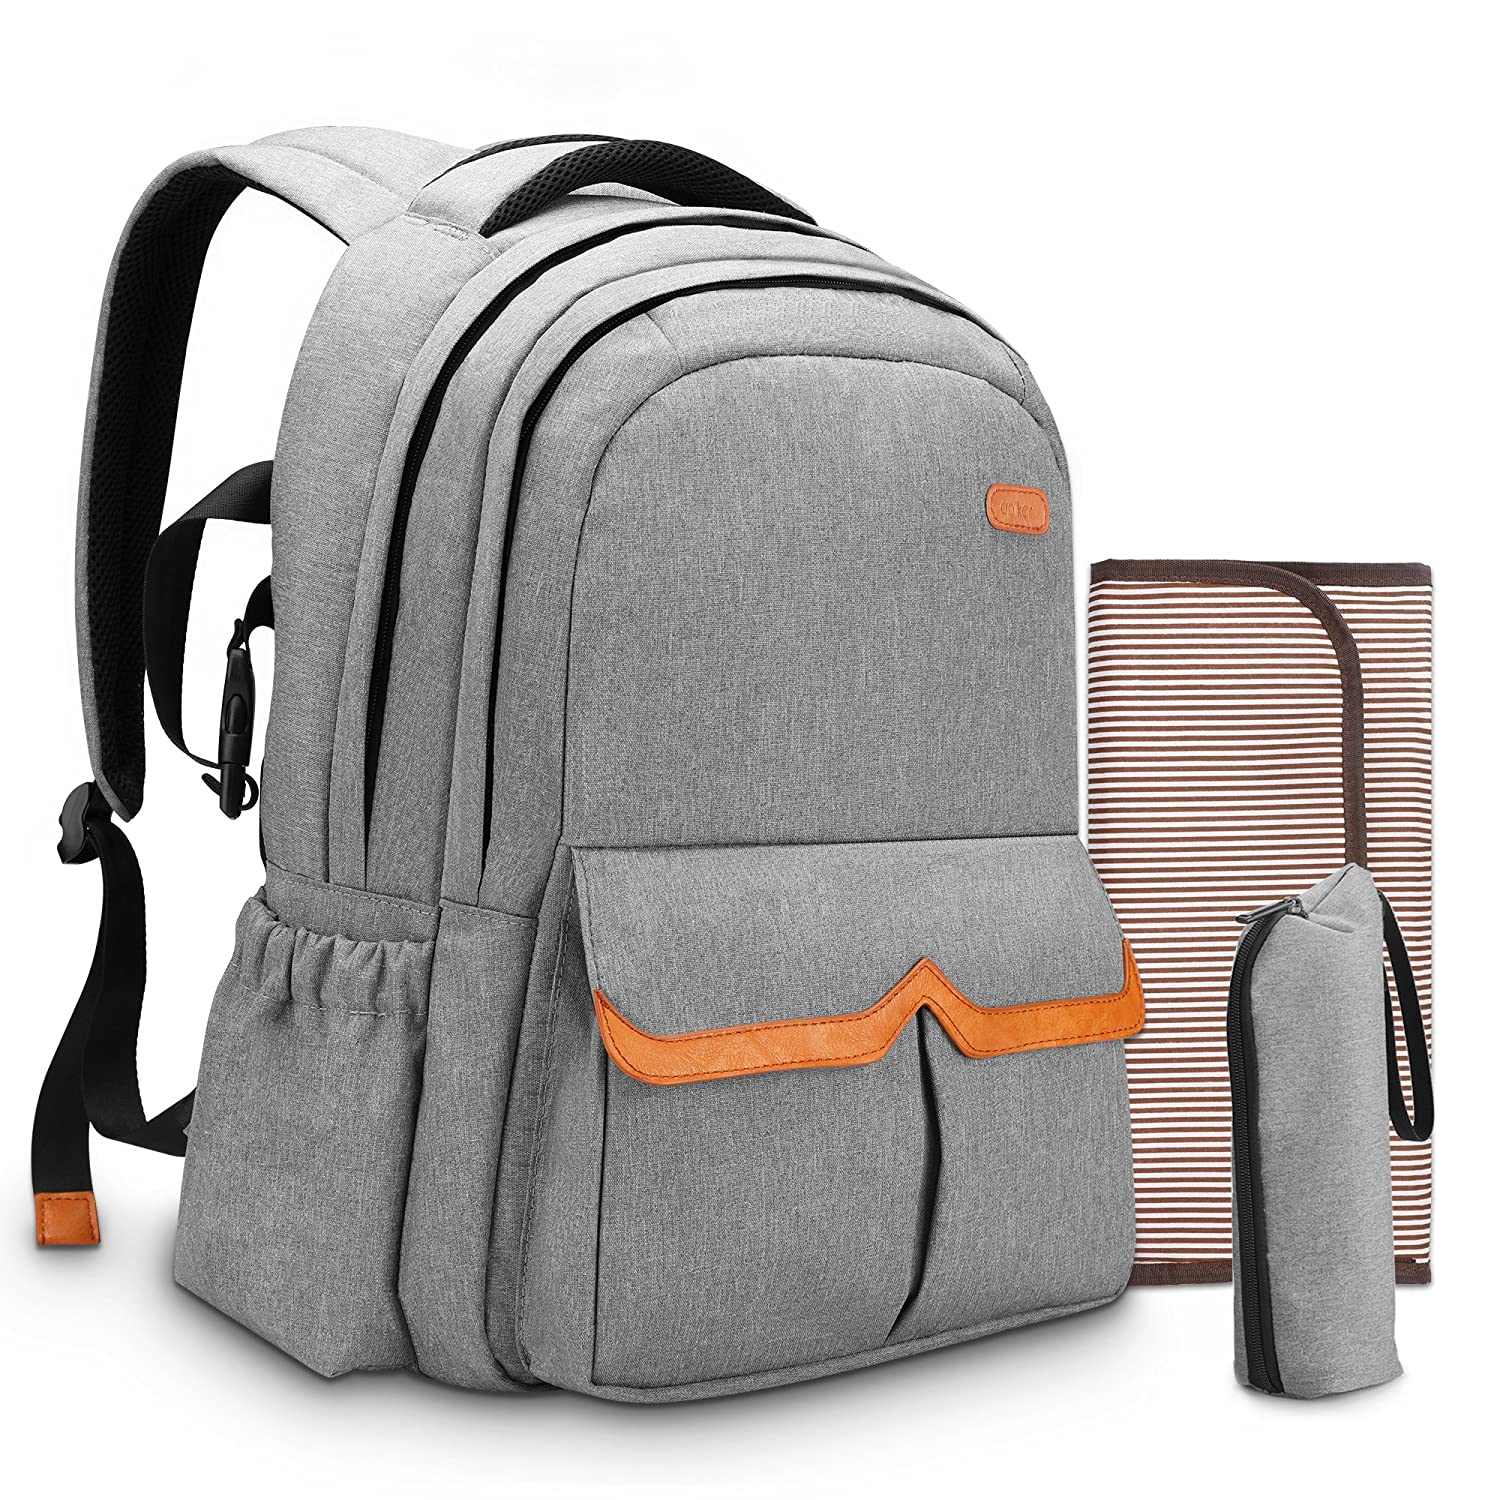 Amazon.com : Diaper Bag Backpack for Dad and Mom, Apiker Water Resistant Nappy Bag for Travel with Baby, Stylish and Durable, with Extra Changing Pad, ...